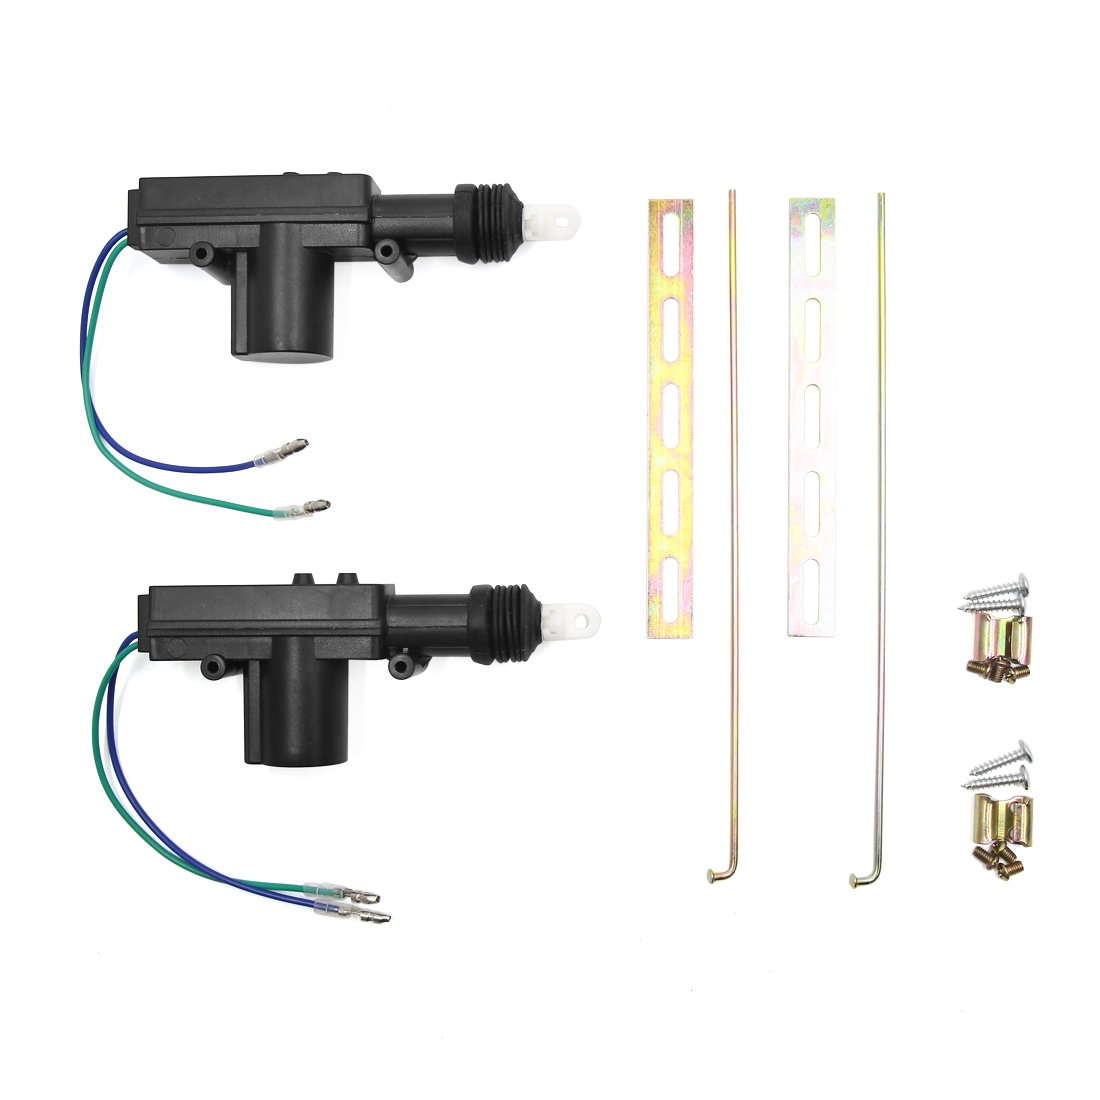 uxcell Universal Car Power Door Lock Actuator Kit for Central Locking System 2 Wire DC 12V Pack of 2